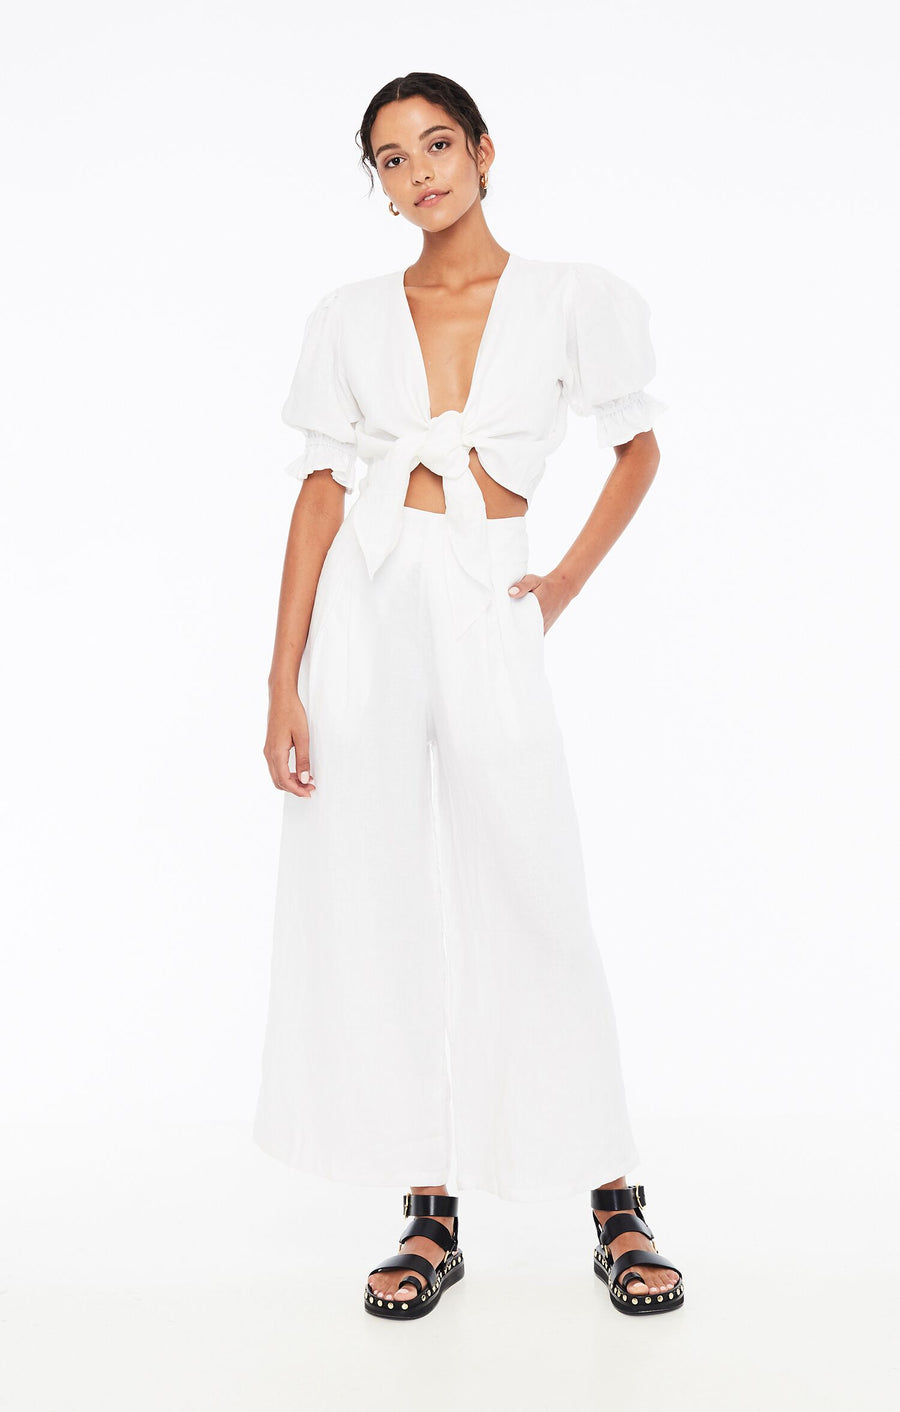 FAITHFULL THE BRAND - MERIDAN WIDE LEG PANT - WHITE